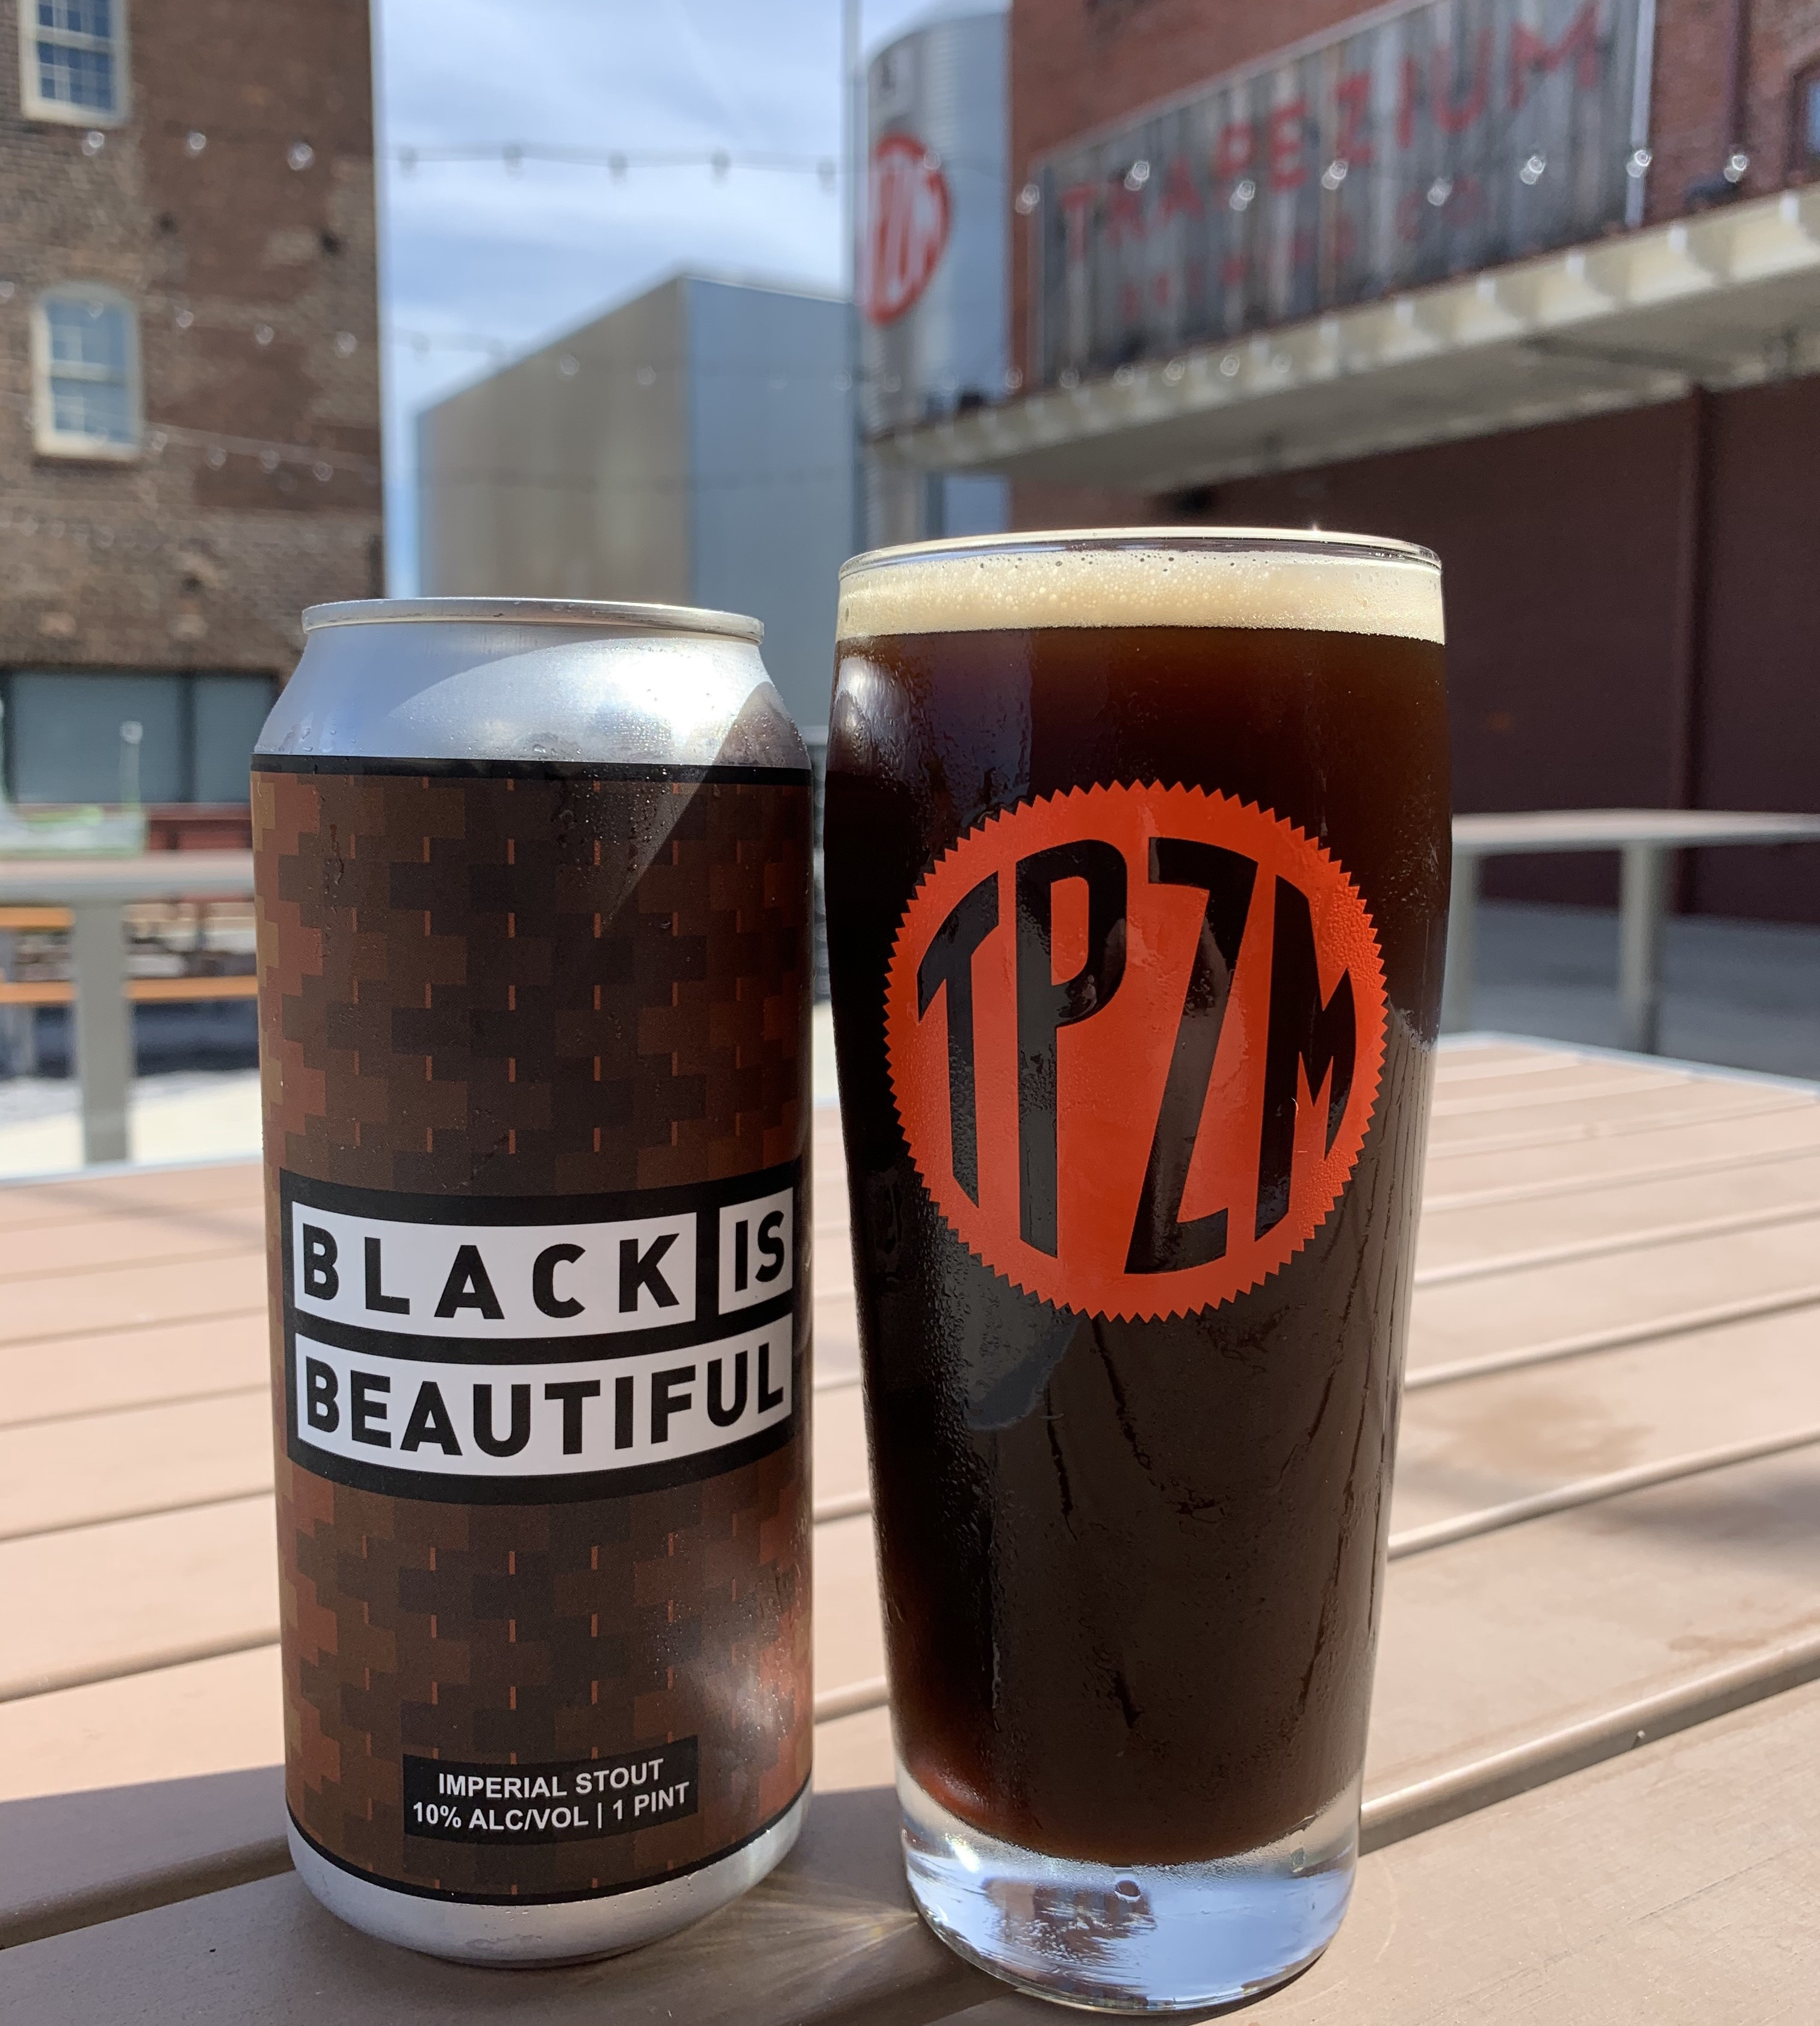 Black Is Beautiful beer from Trapezium Brewing